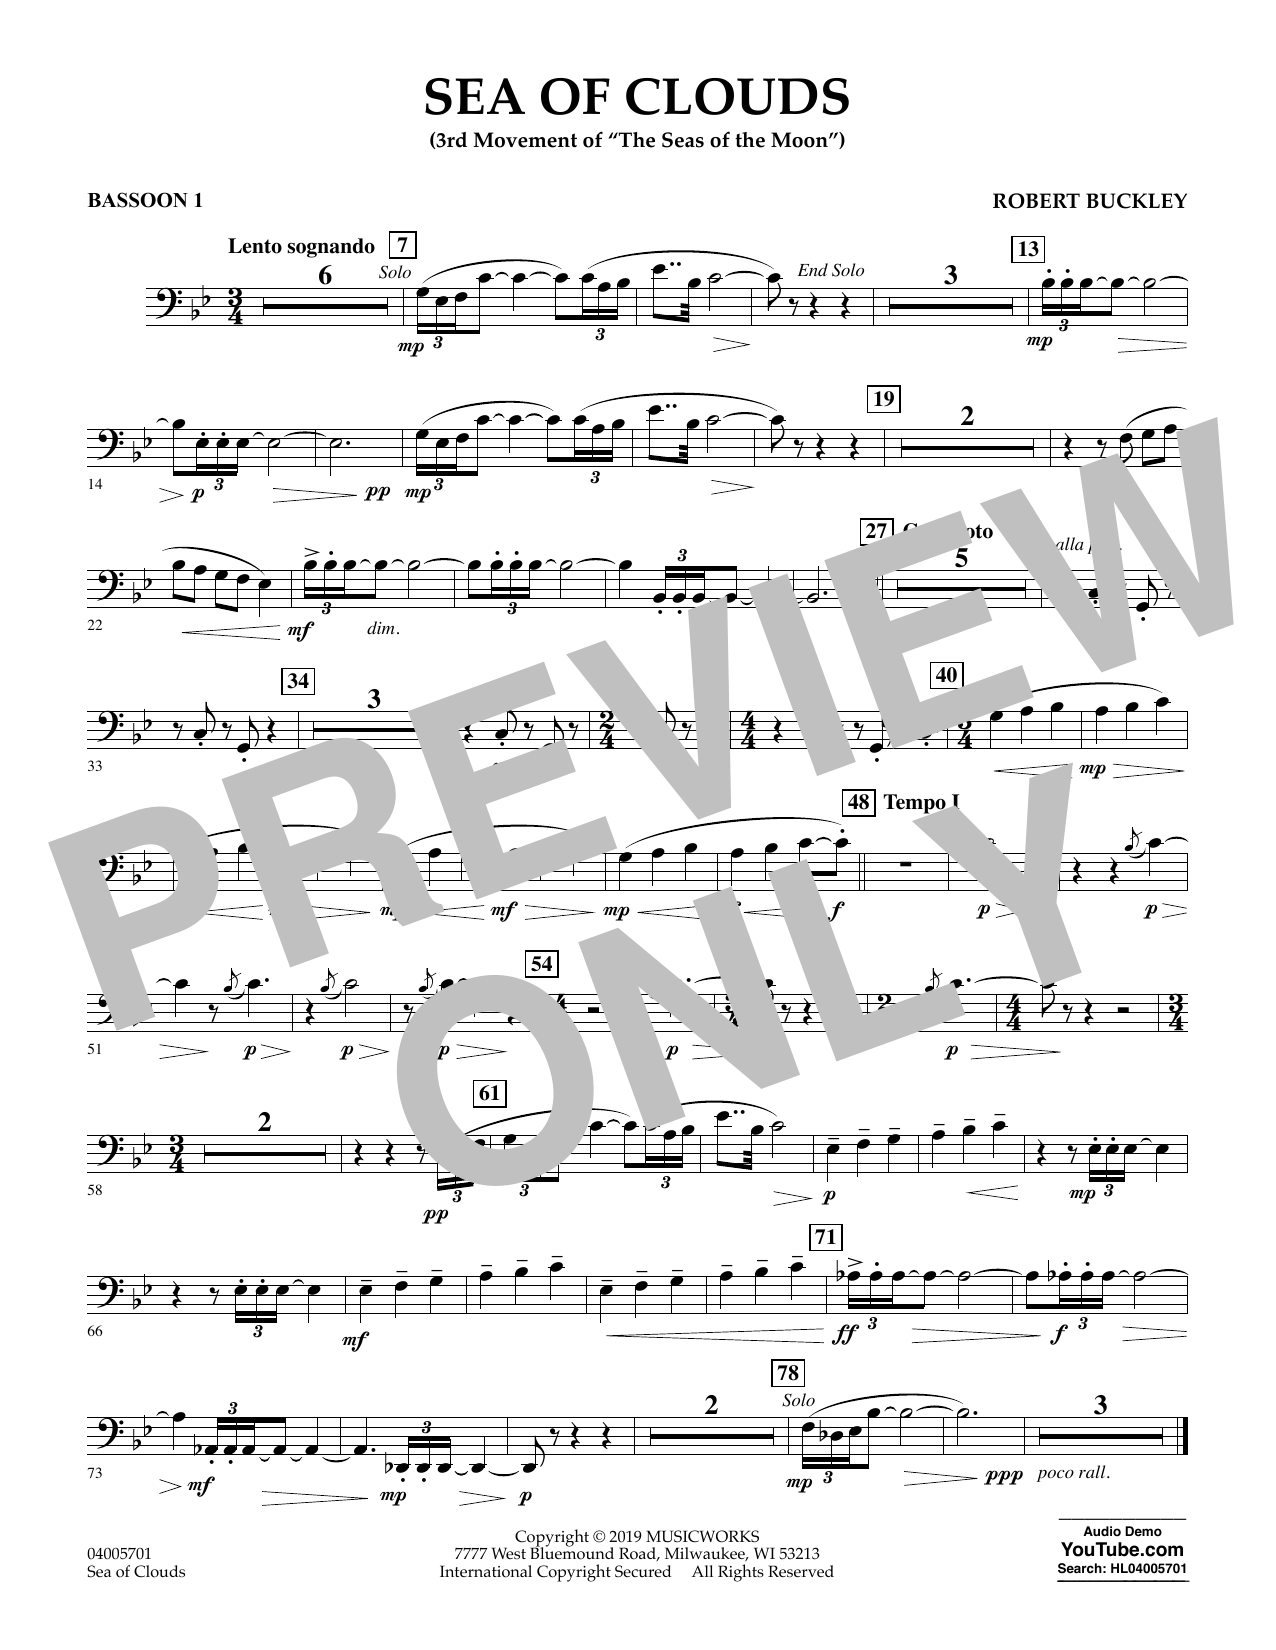 Robert Buckley Sea of Clouds - Bassoon 1 sheet music preview music notes and score for Concert Band including 1 page(s)